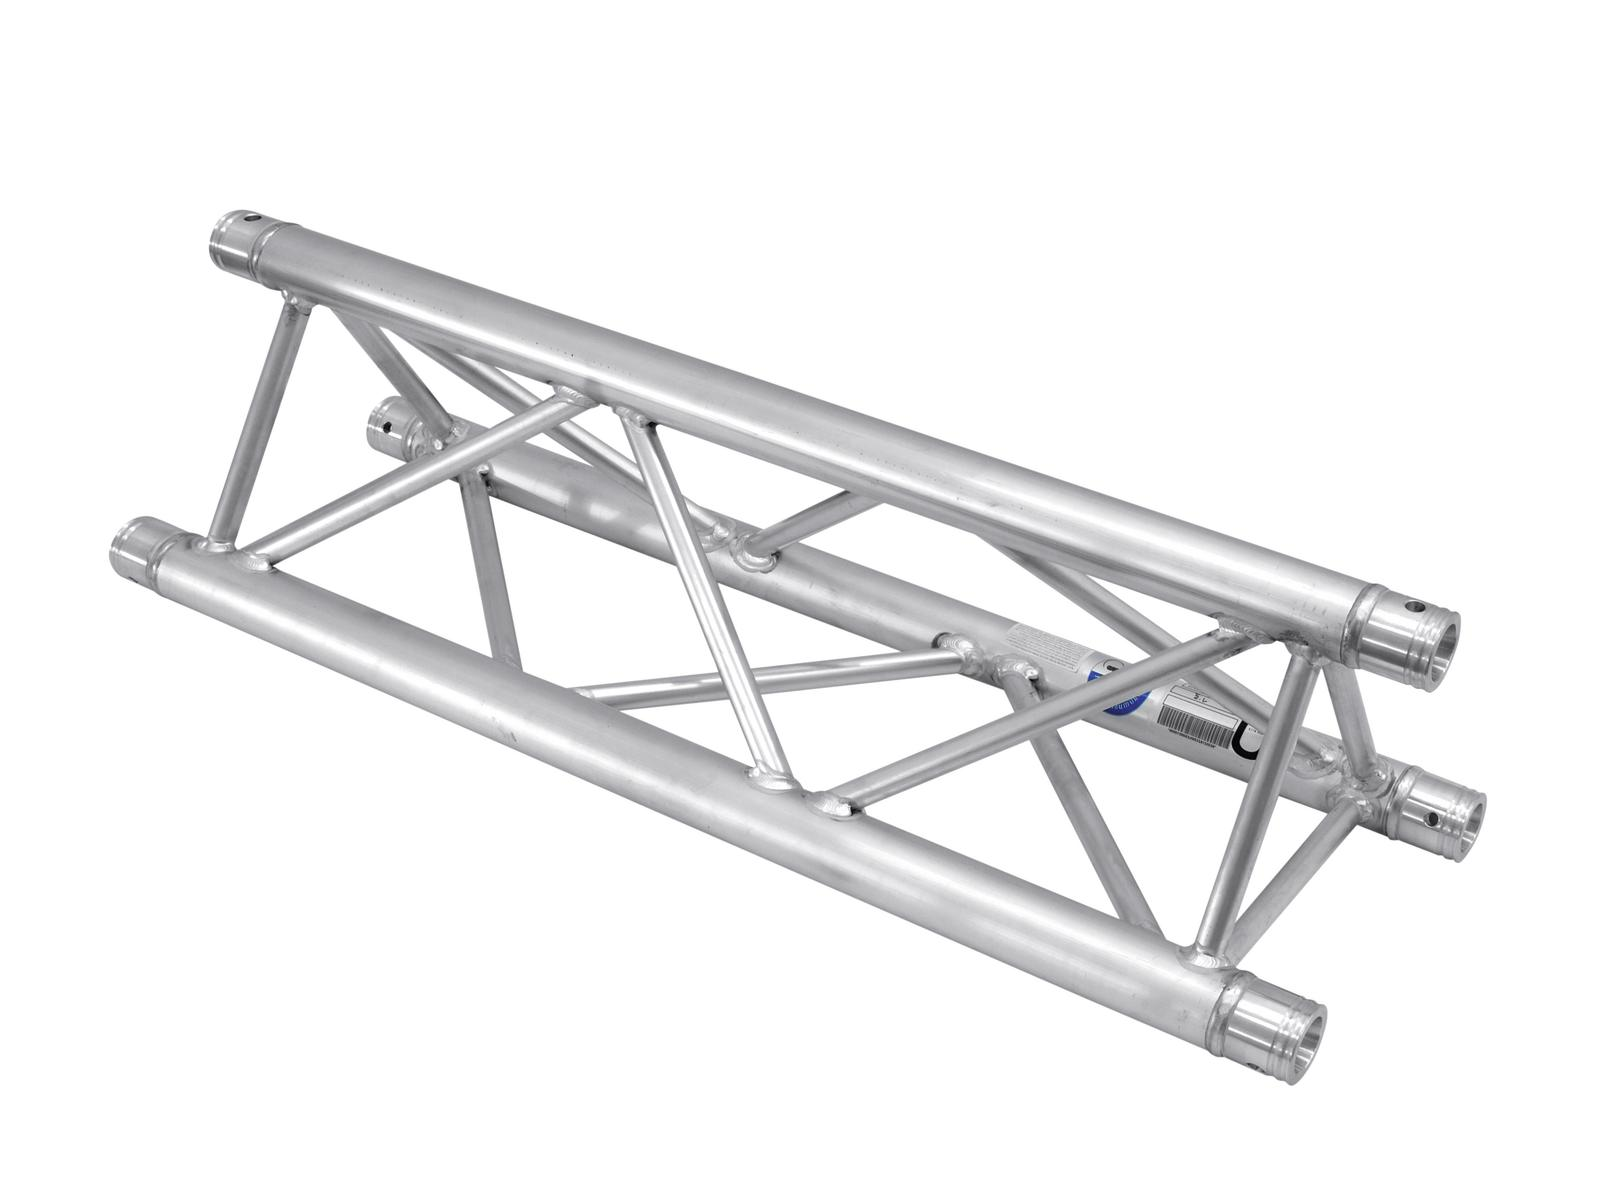 ALUTRUSS TRILOCK E-GL33 4000 a 3 vie traverse